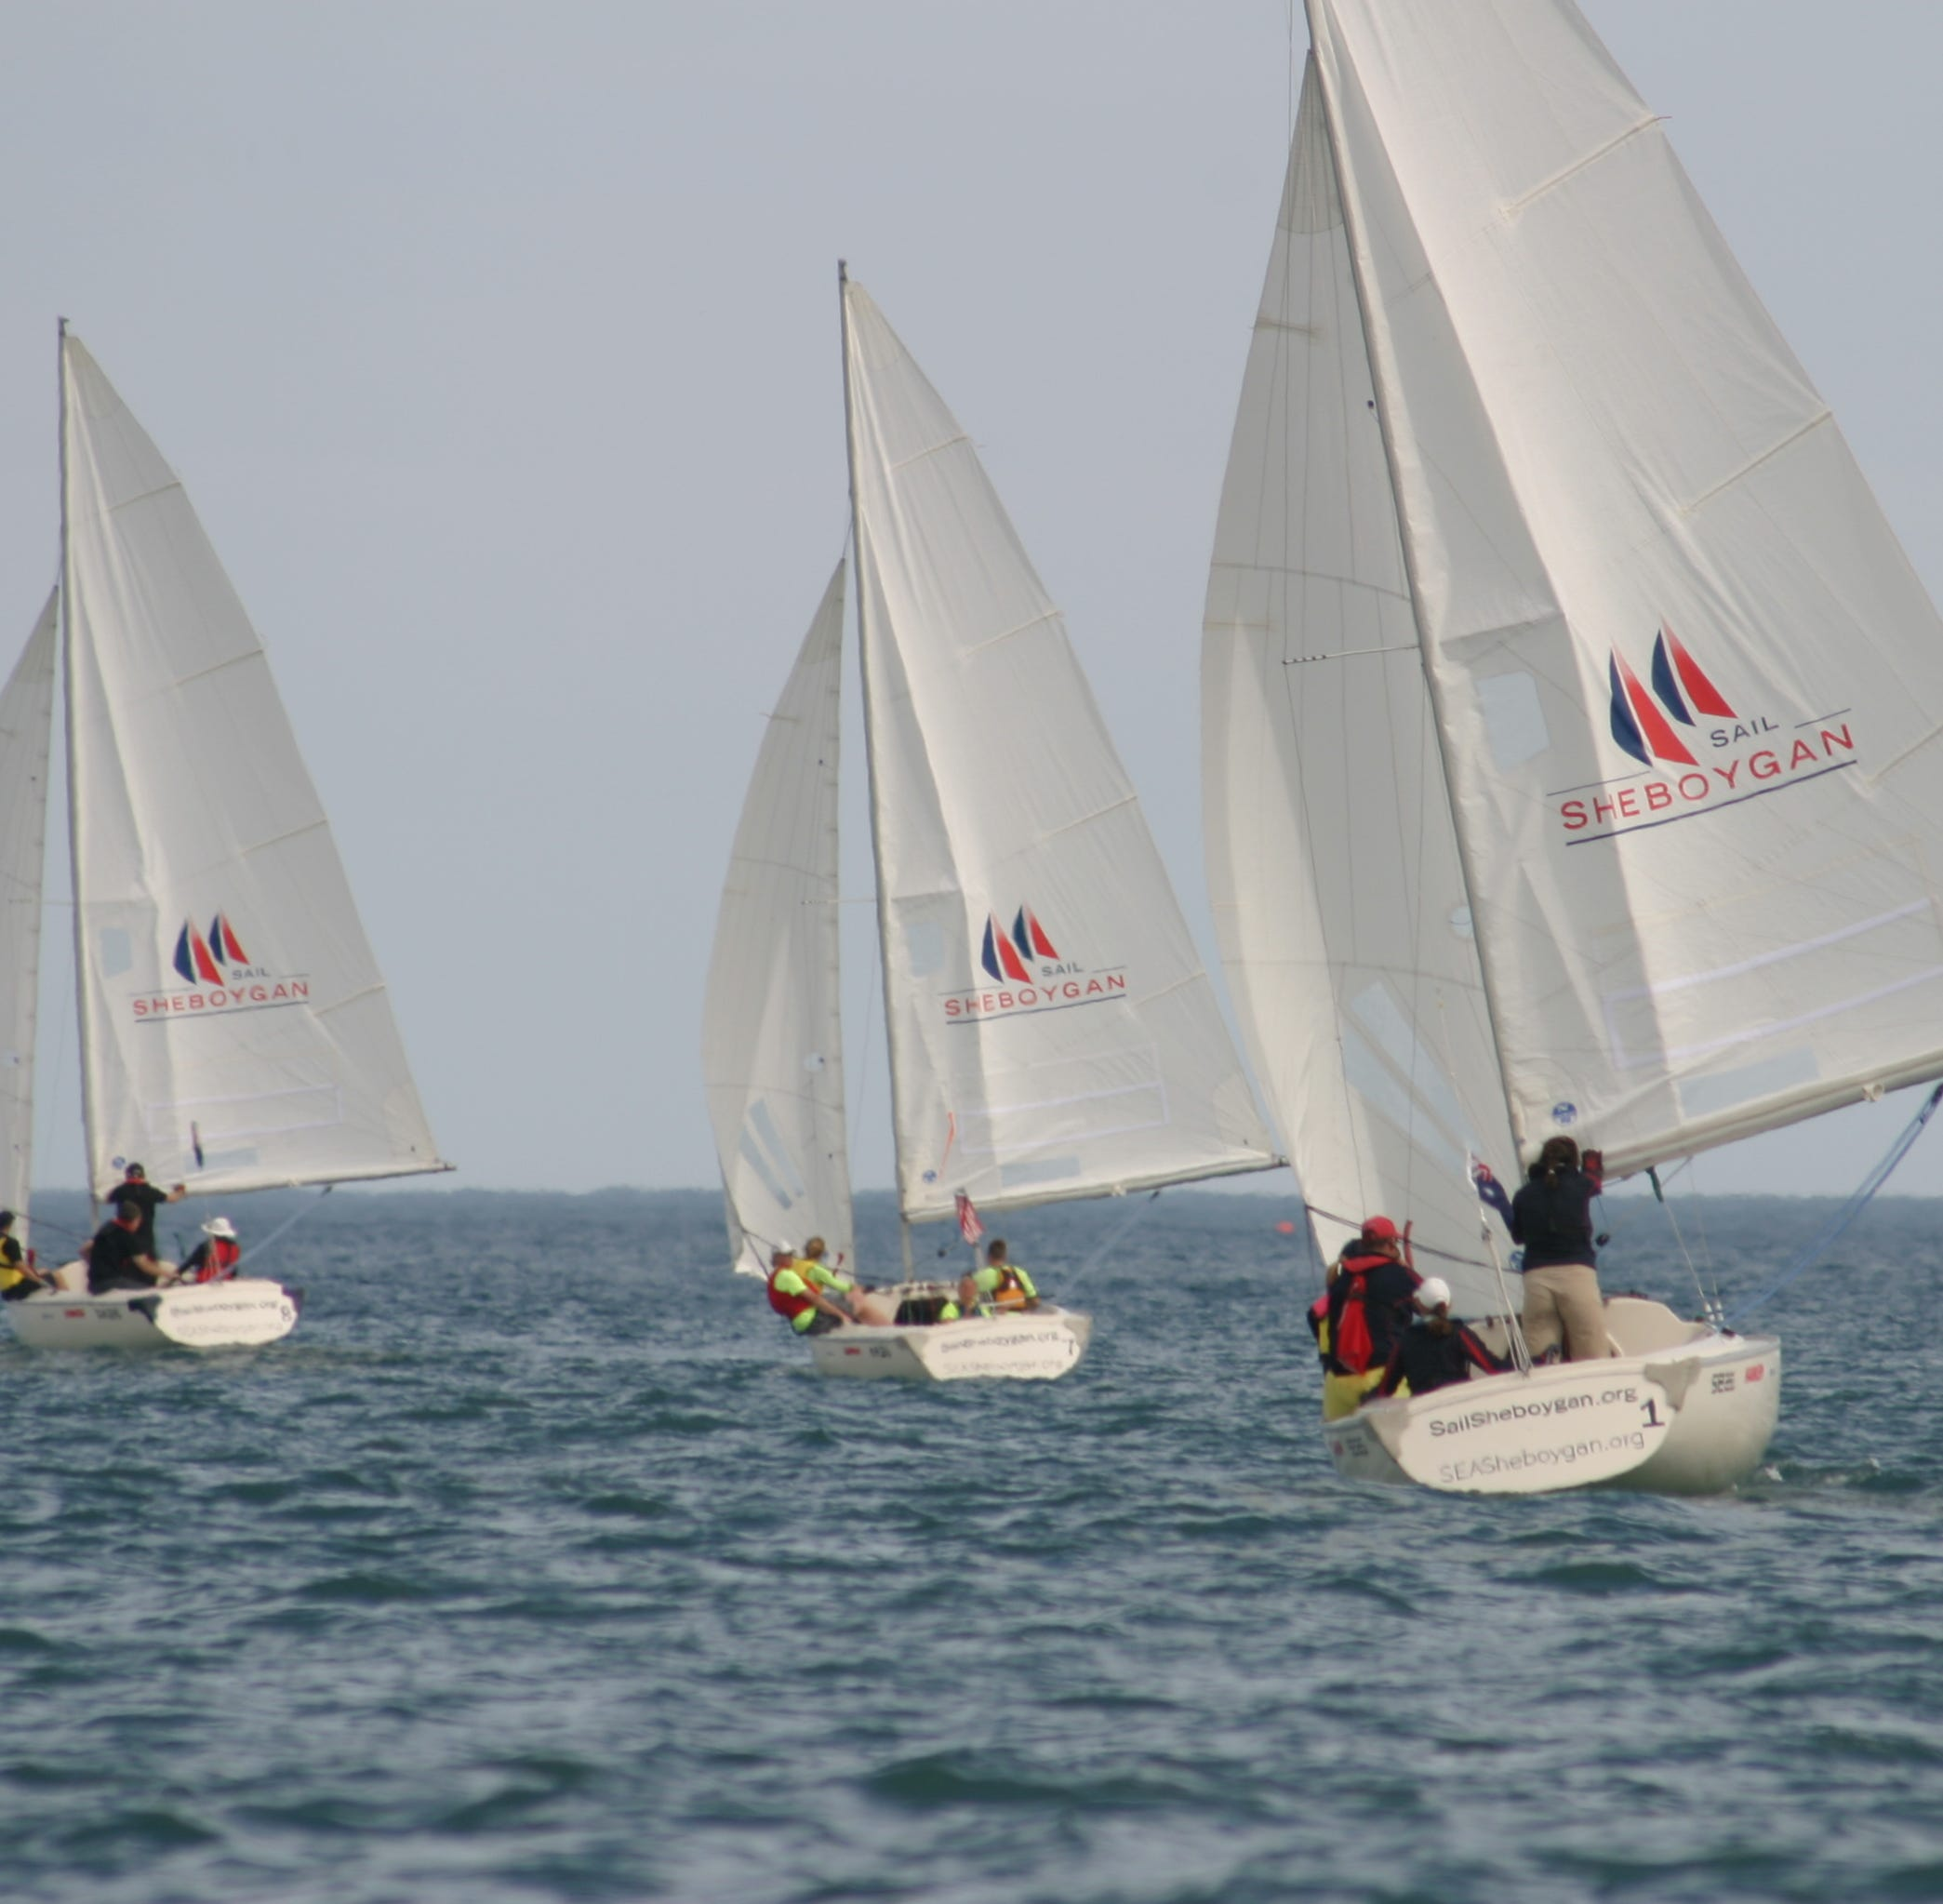 Want to watch the International Para World Championship in Sheboygan? Here's what to know